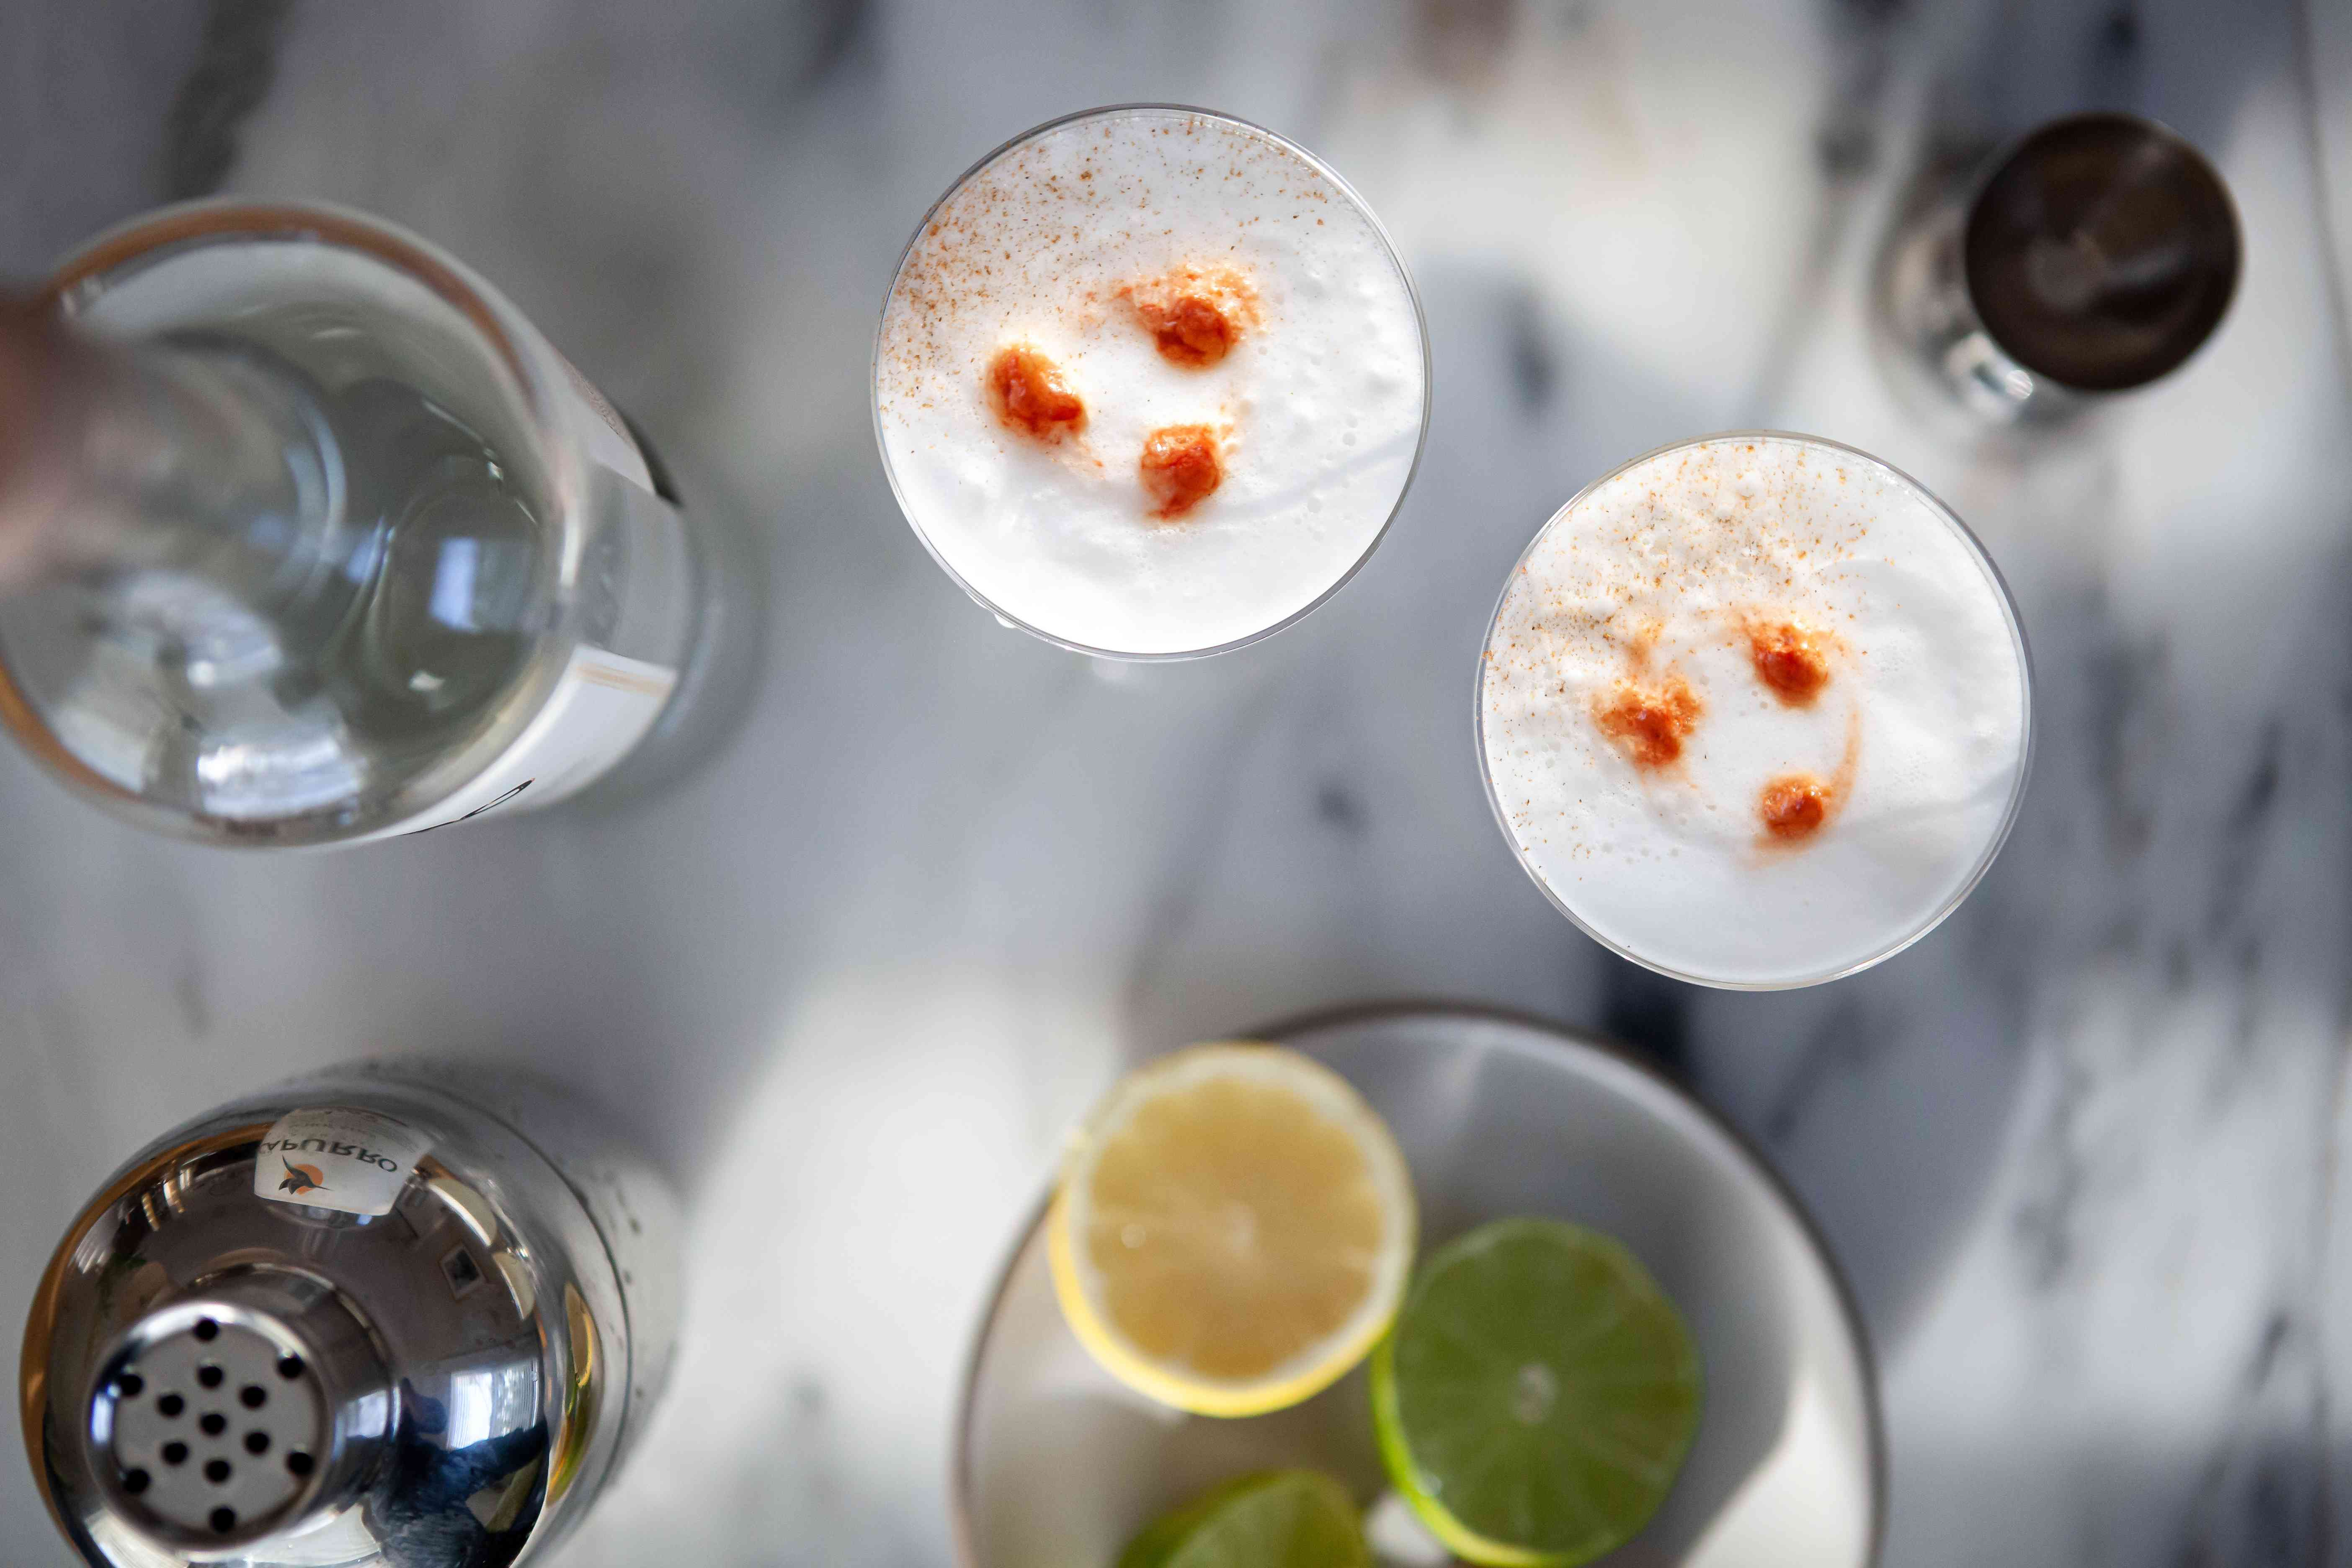 Overhead view of two Pisco Sour Cocktails on a marble countertop and garnished with three drops of bitters.